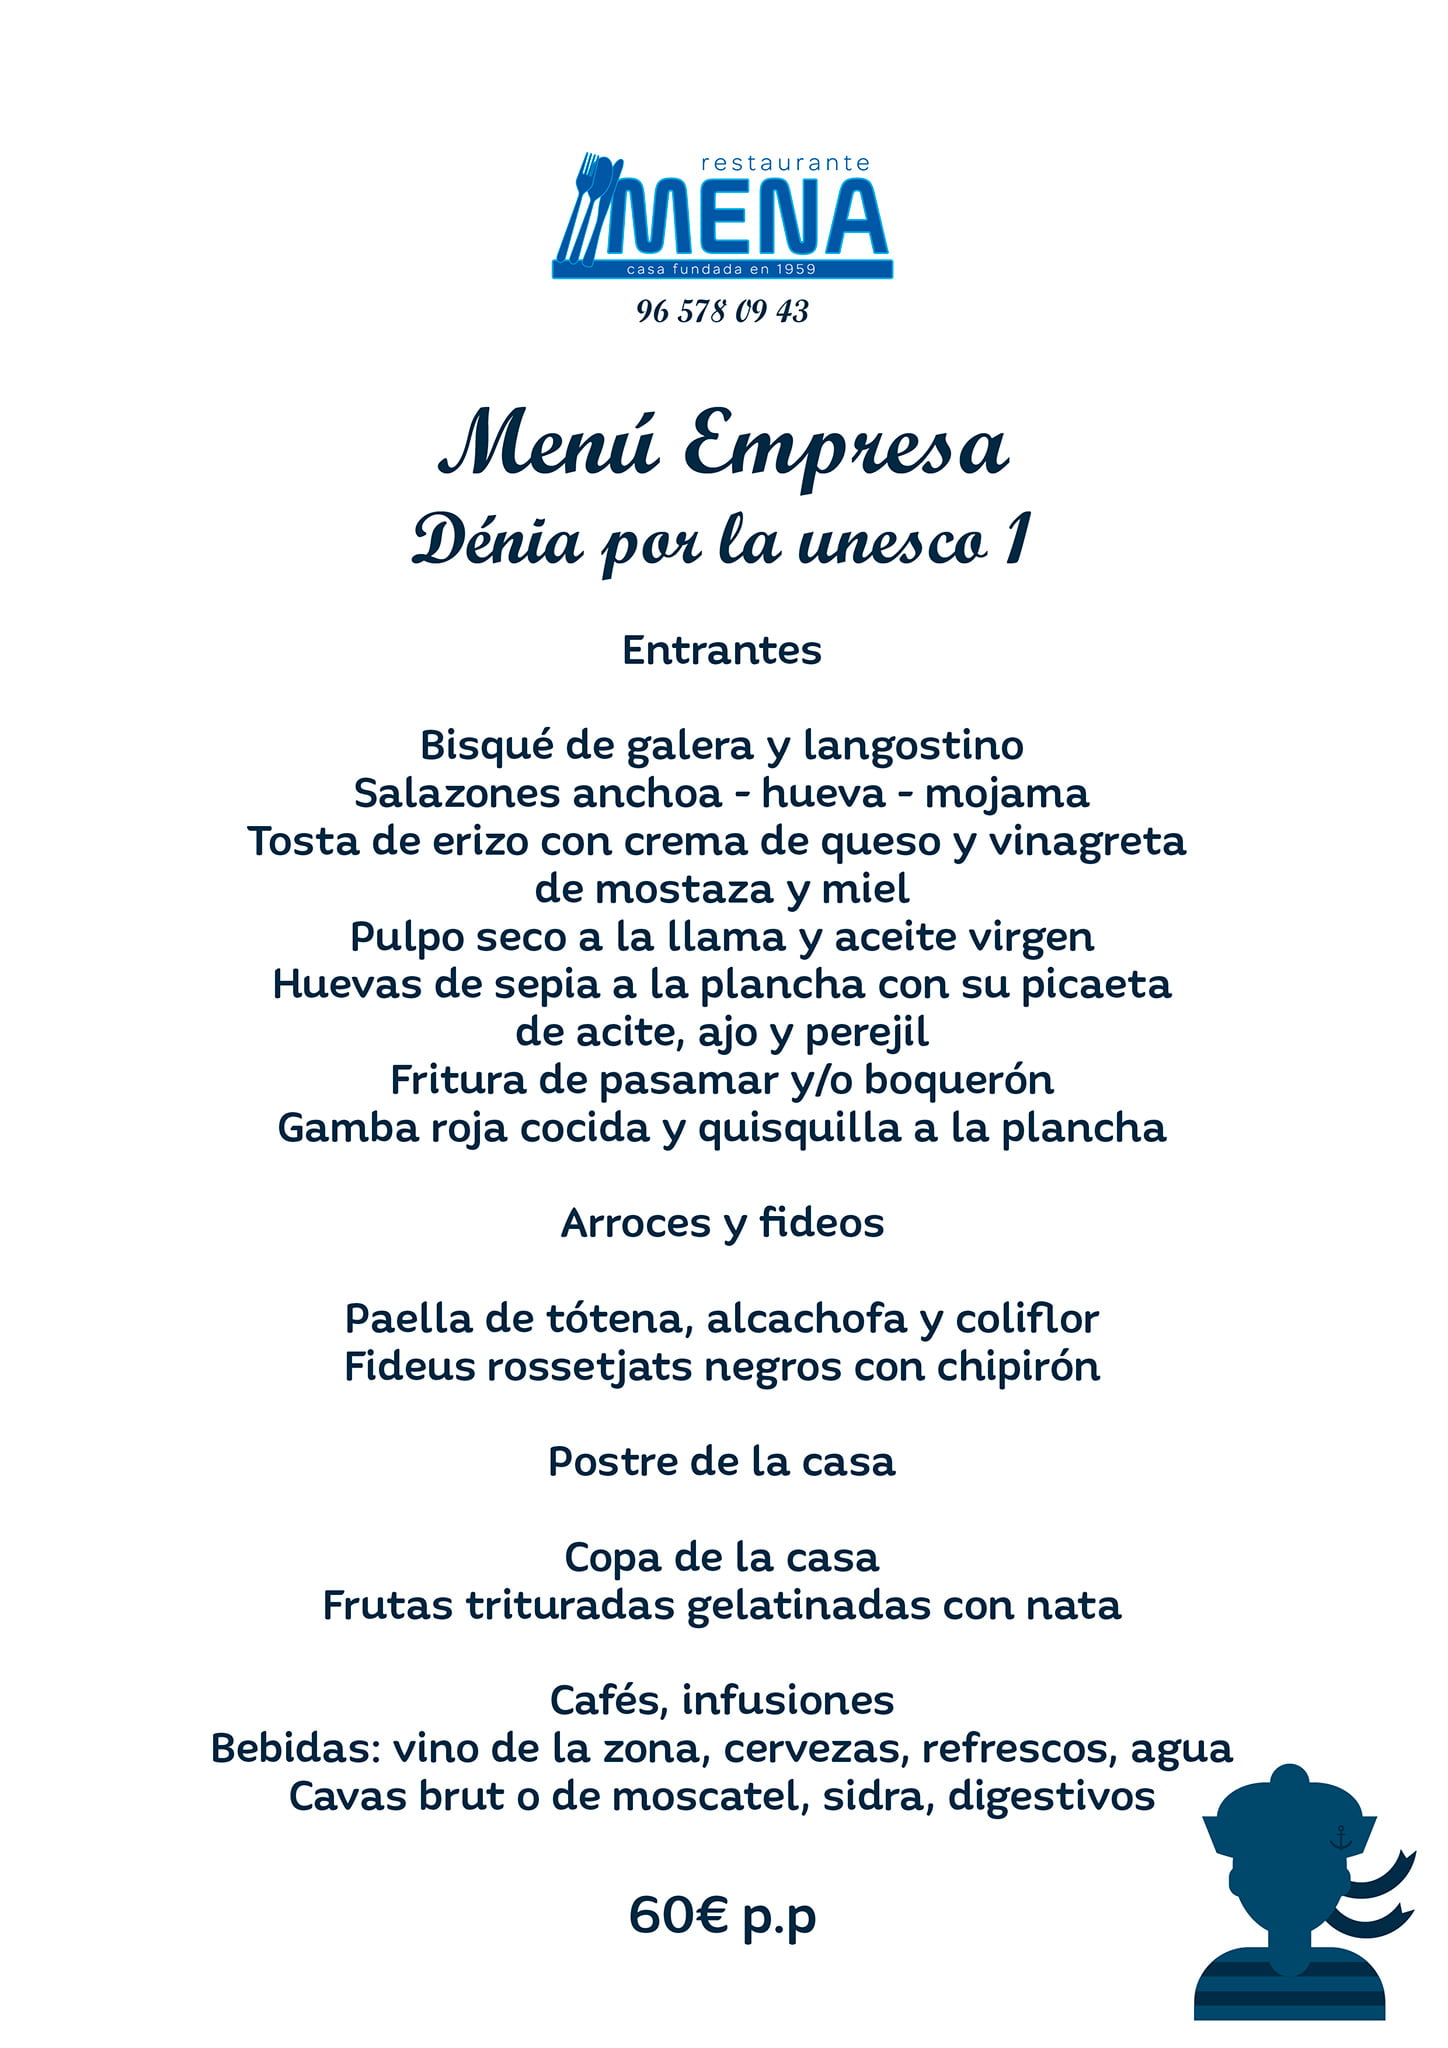 menù-of-business-UNESCO-1-ristorante-mena